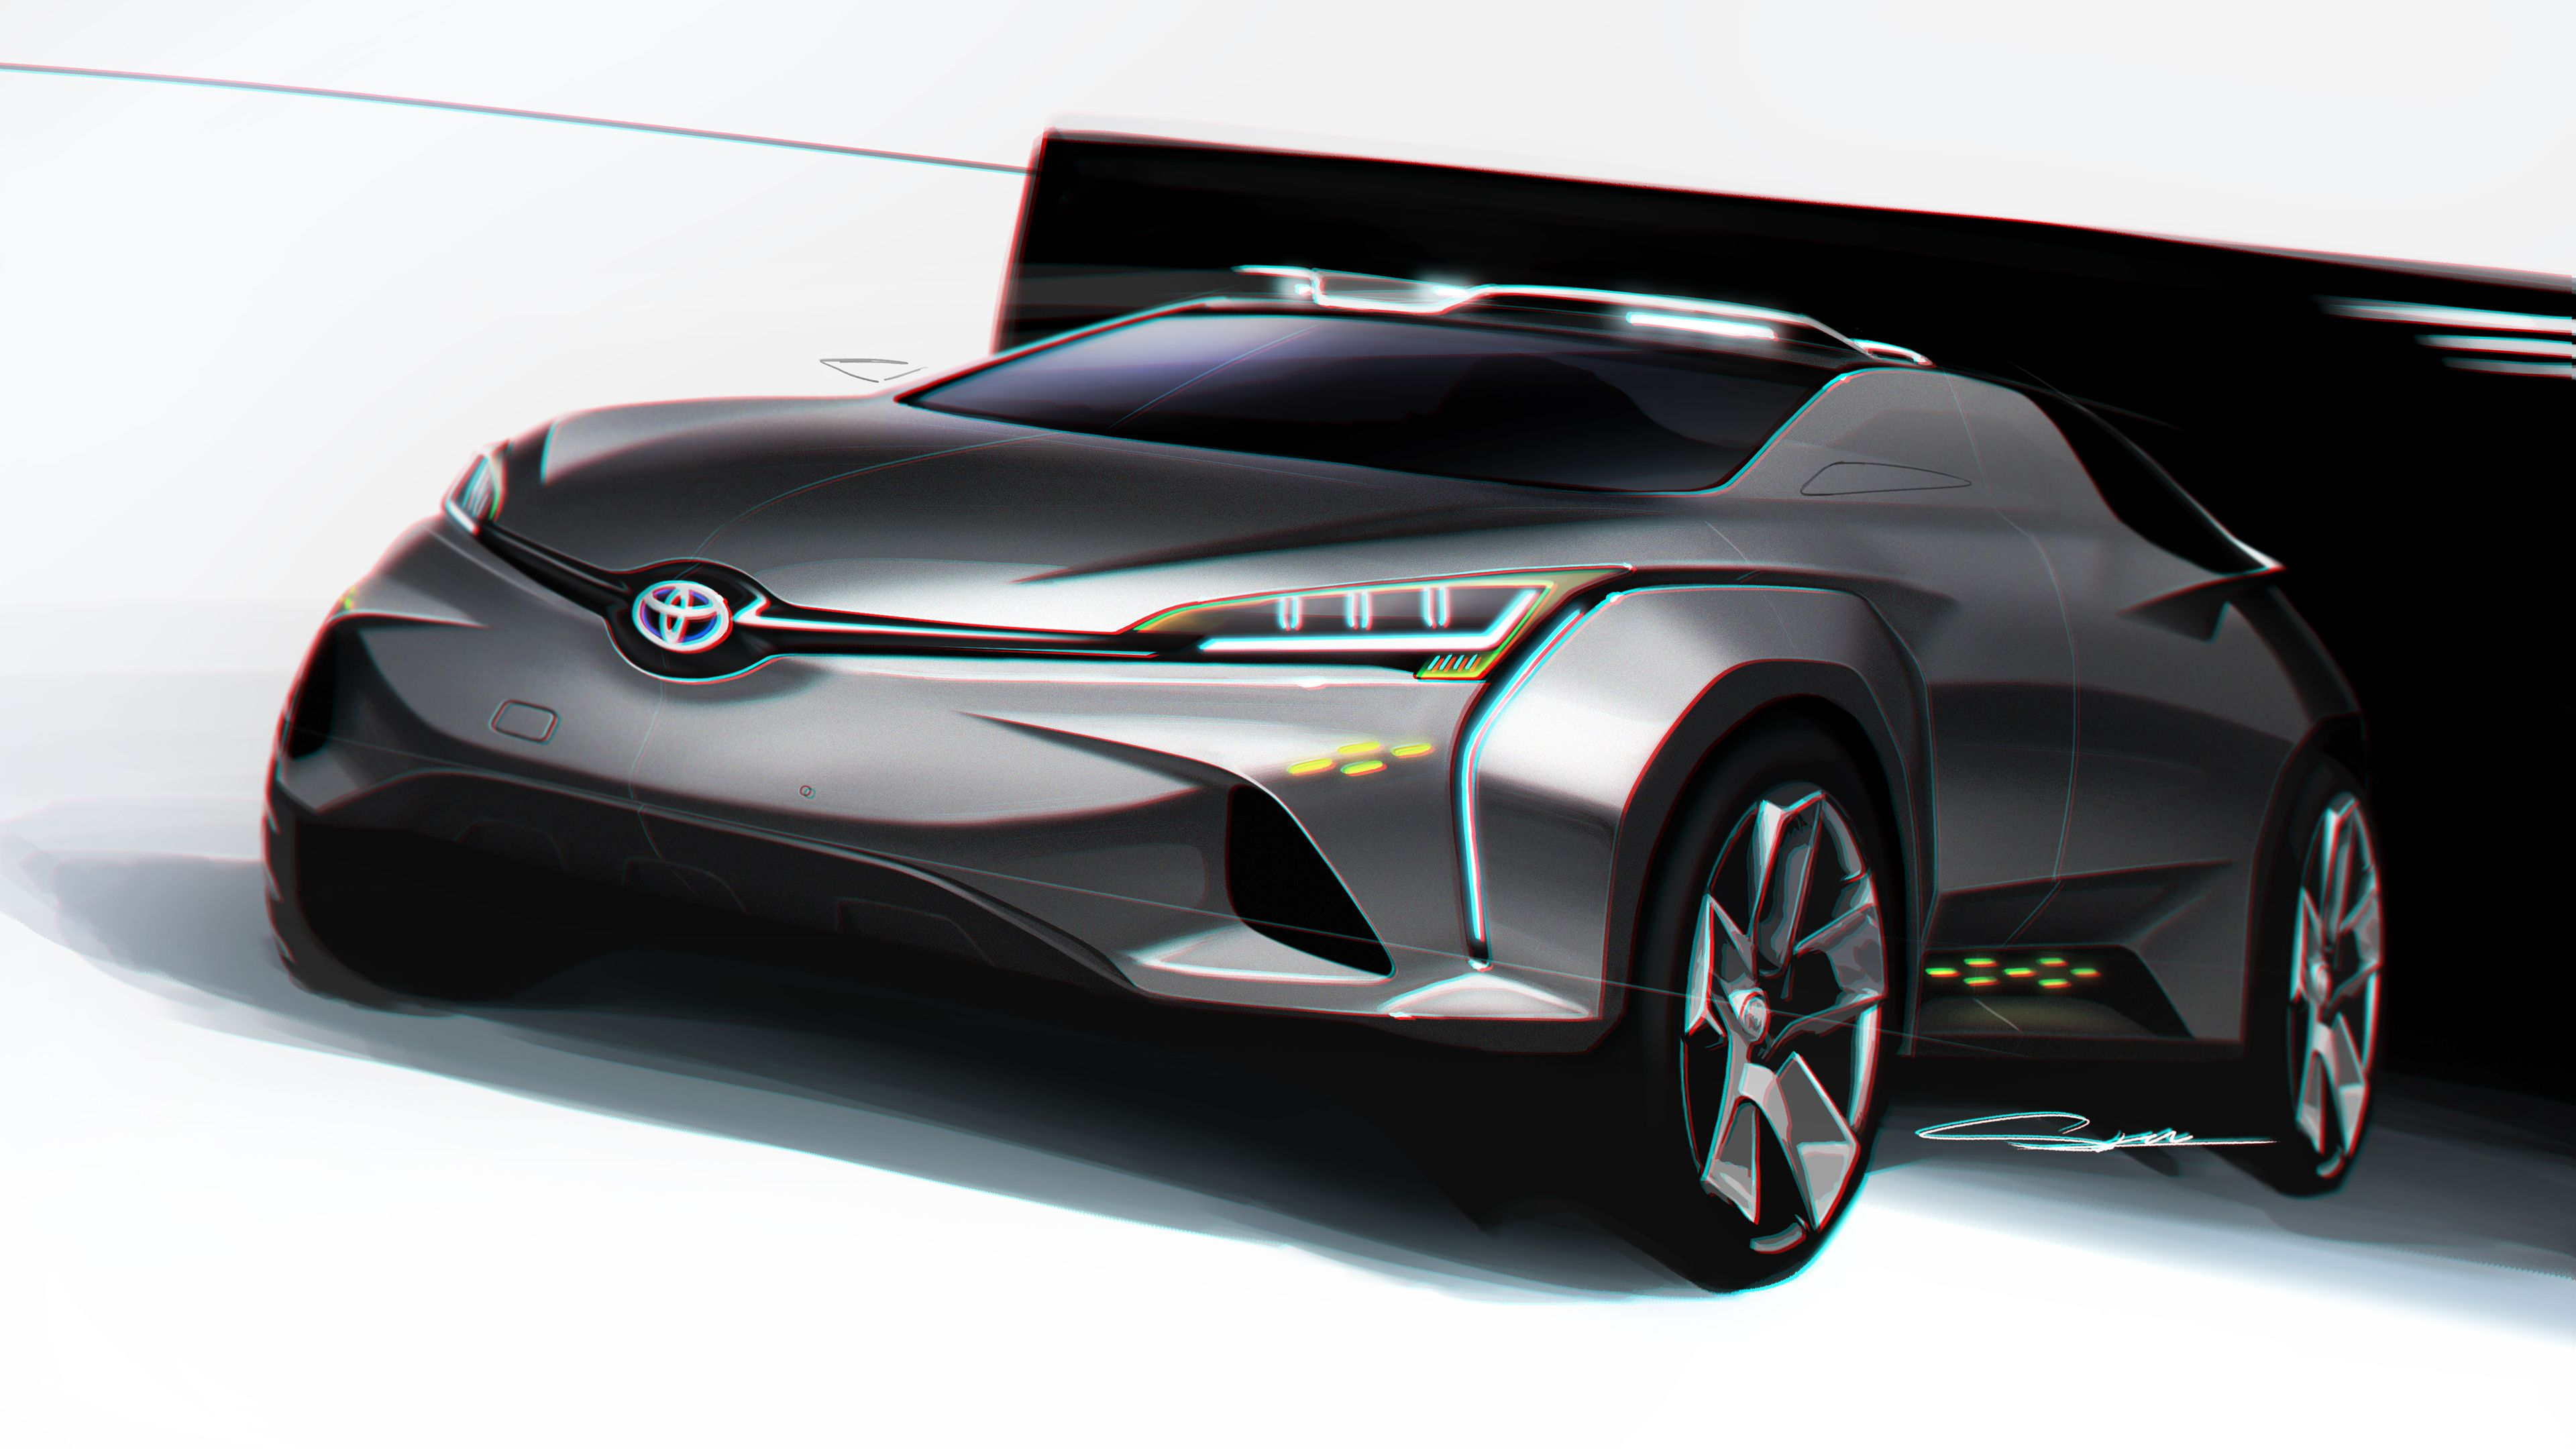 Cuv Car Toyota Cuv Concept Design Car Design Sketch Motorcycle Design